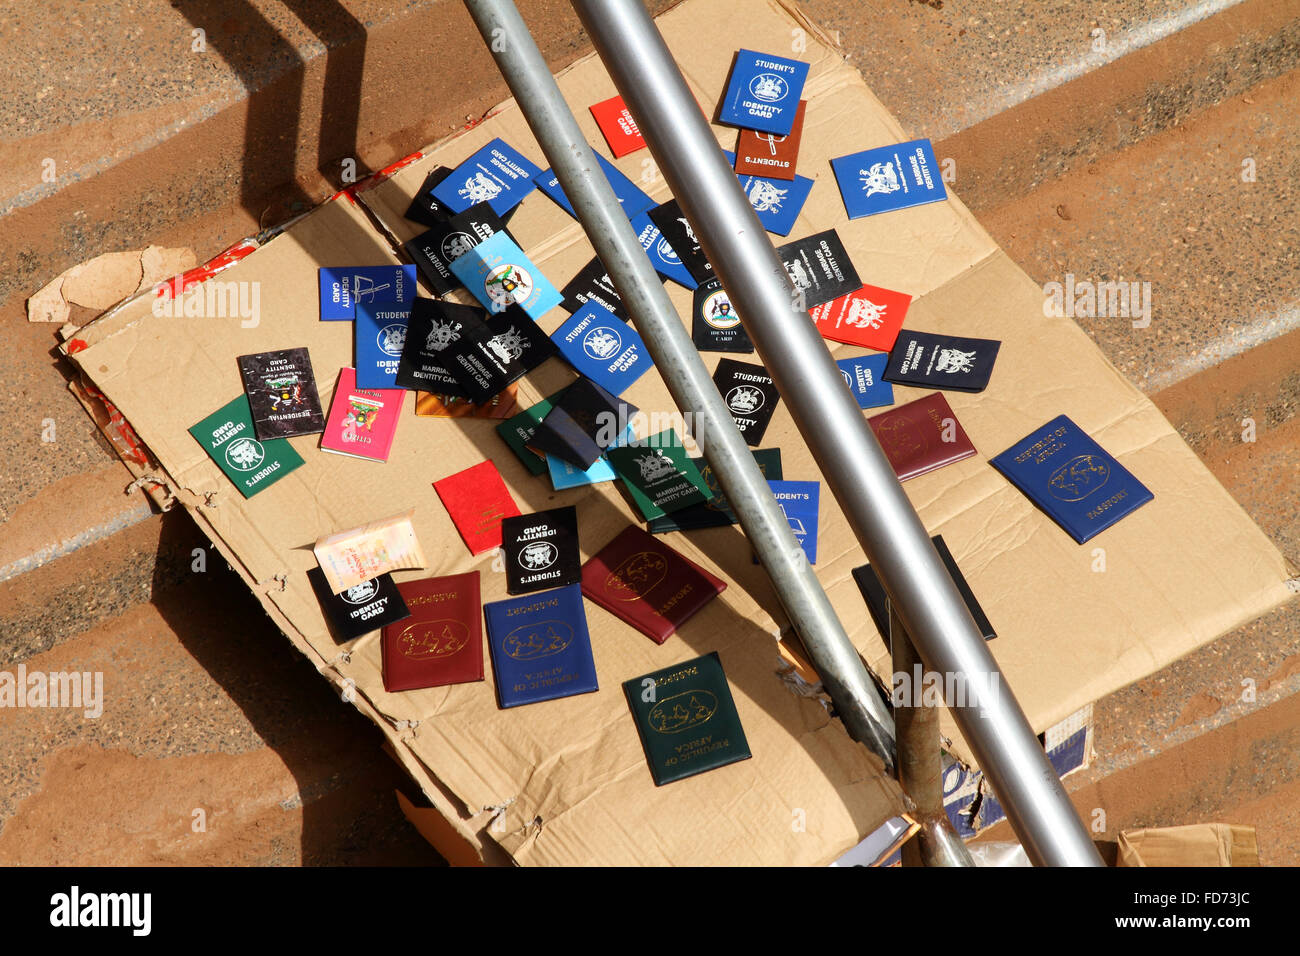 Identity cards in booklets for sale on the steps in Kampala, Uganda. - Stock Image